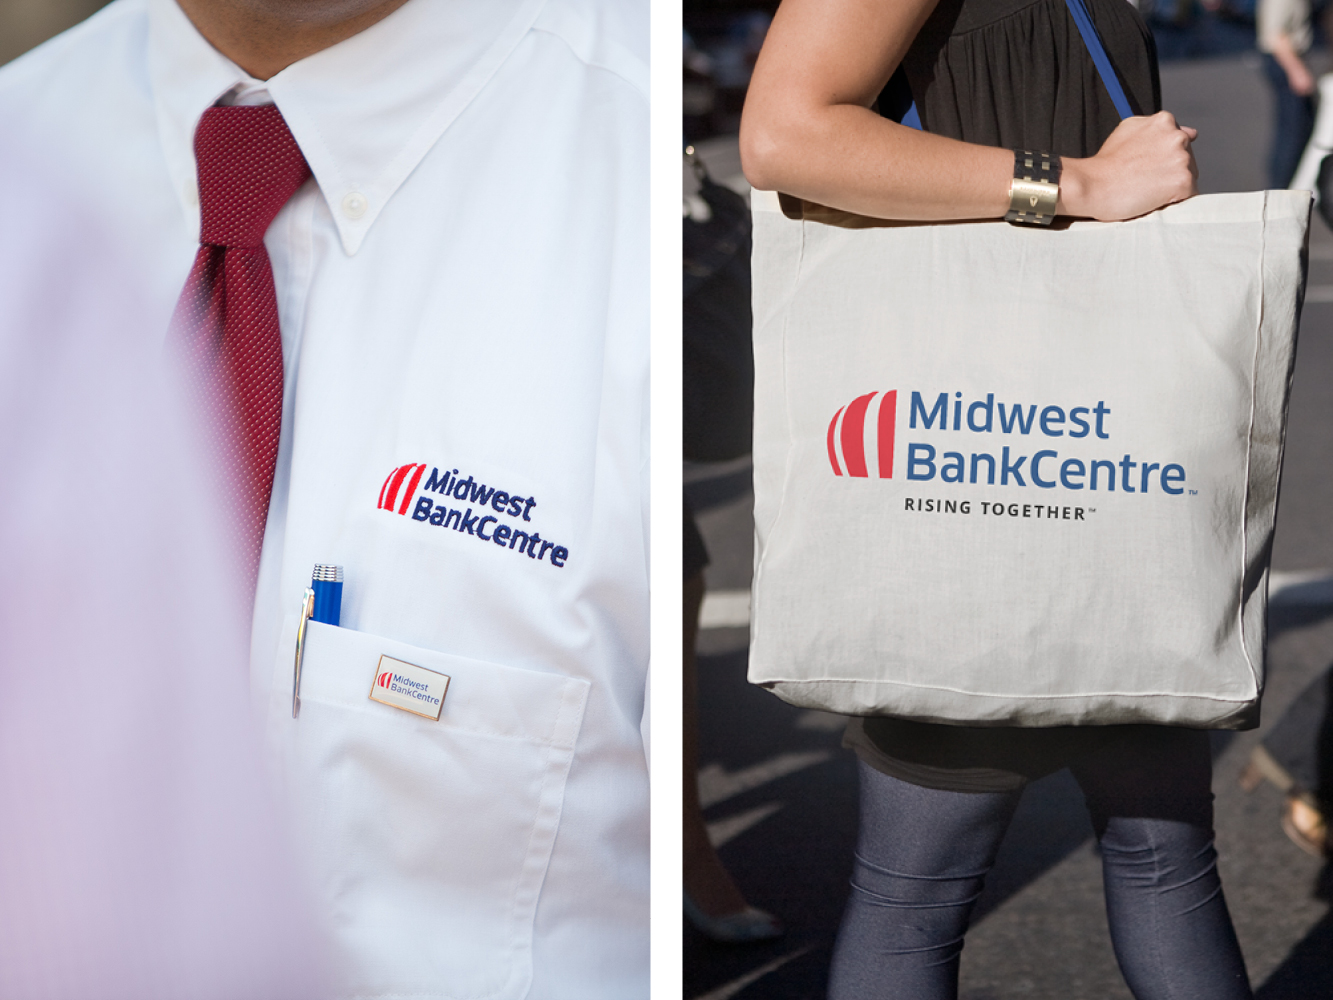 Branded shirt and bag with Midwest BankCentre logo